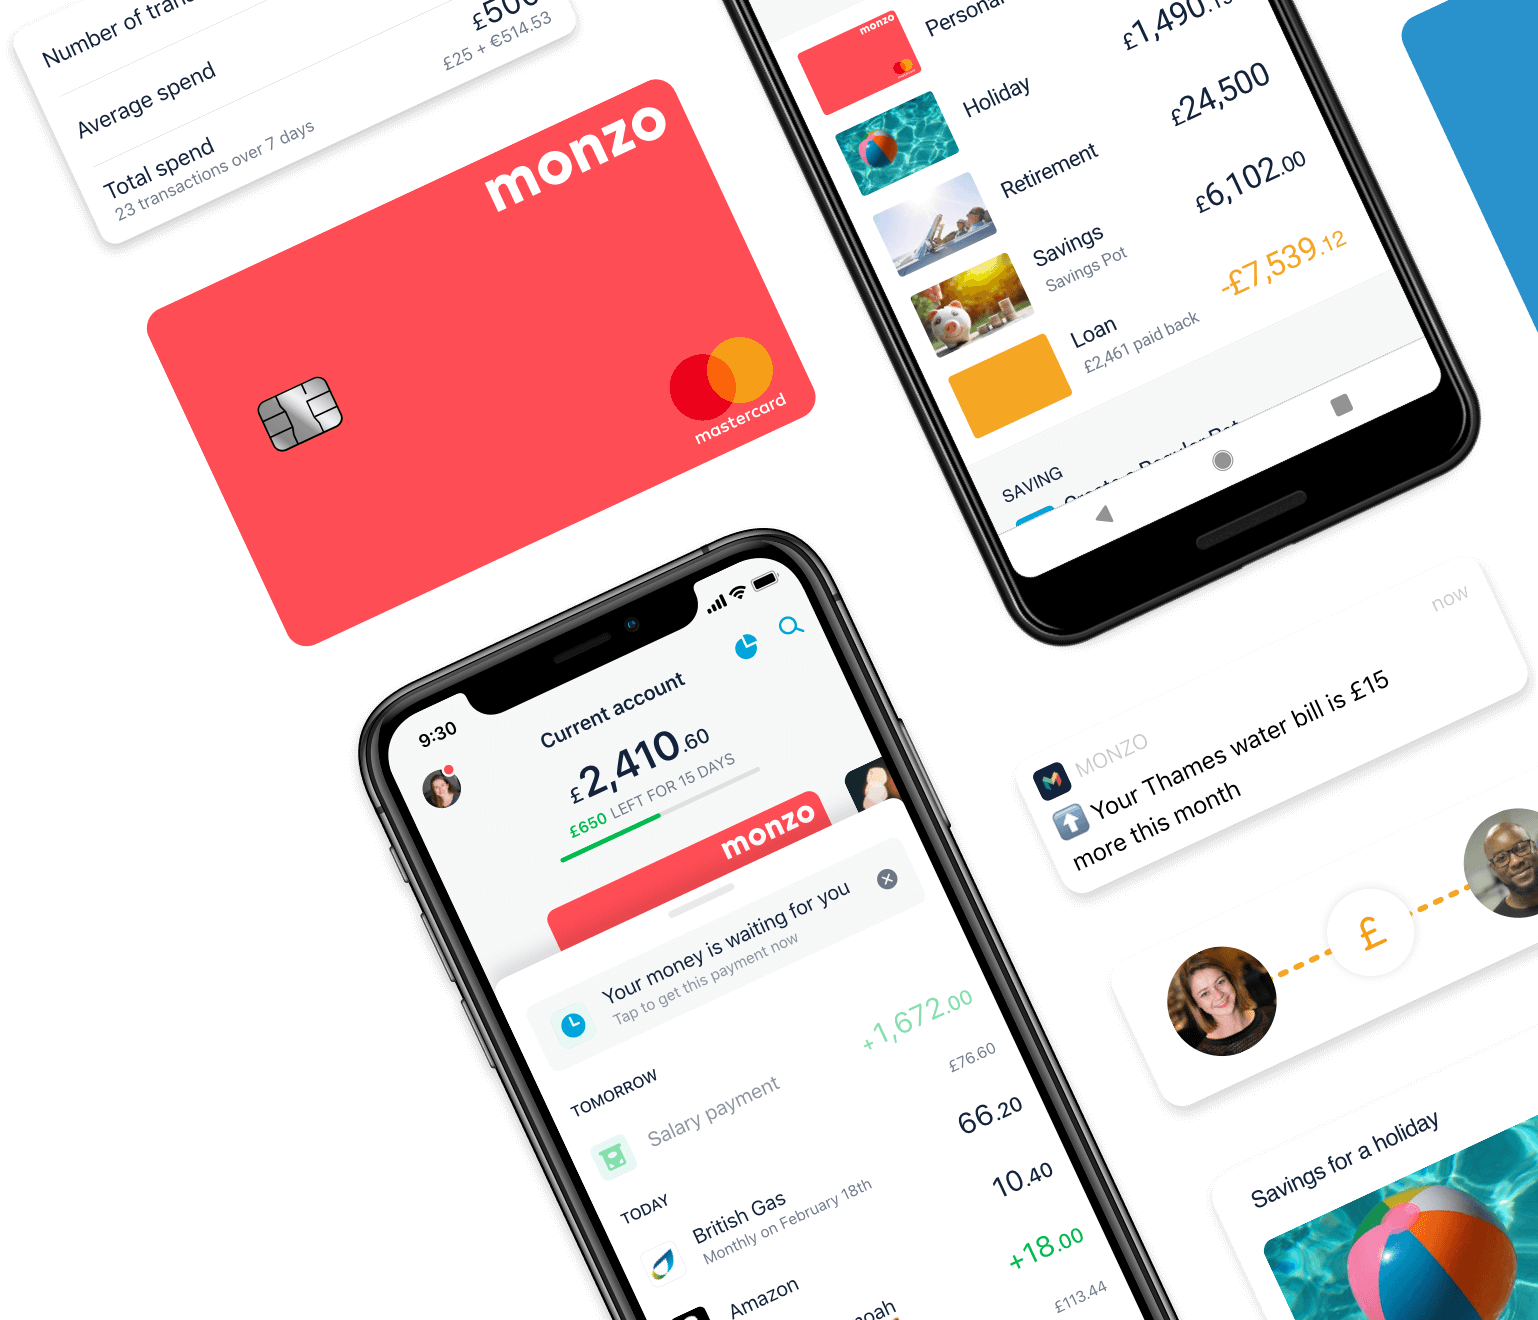 Monzo app and its key features